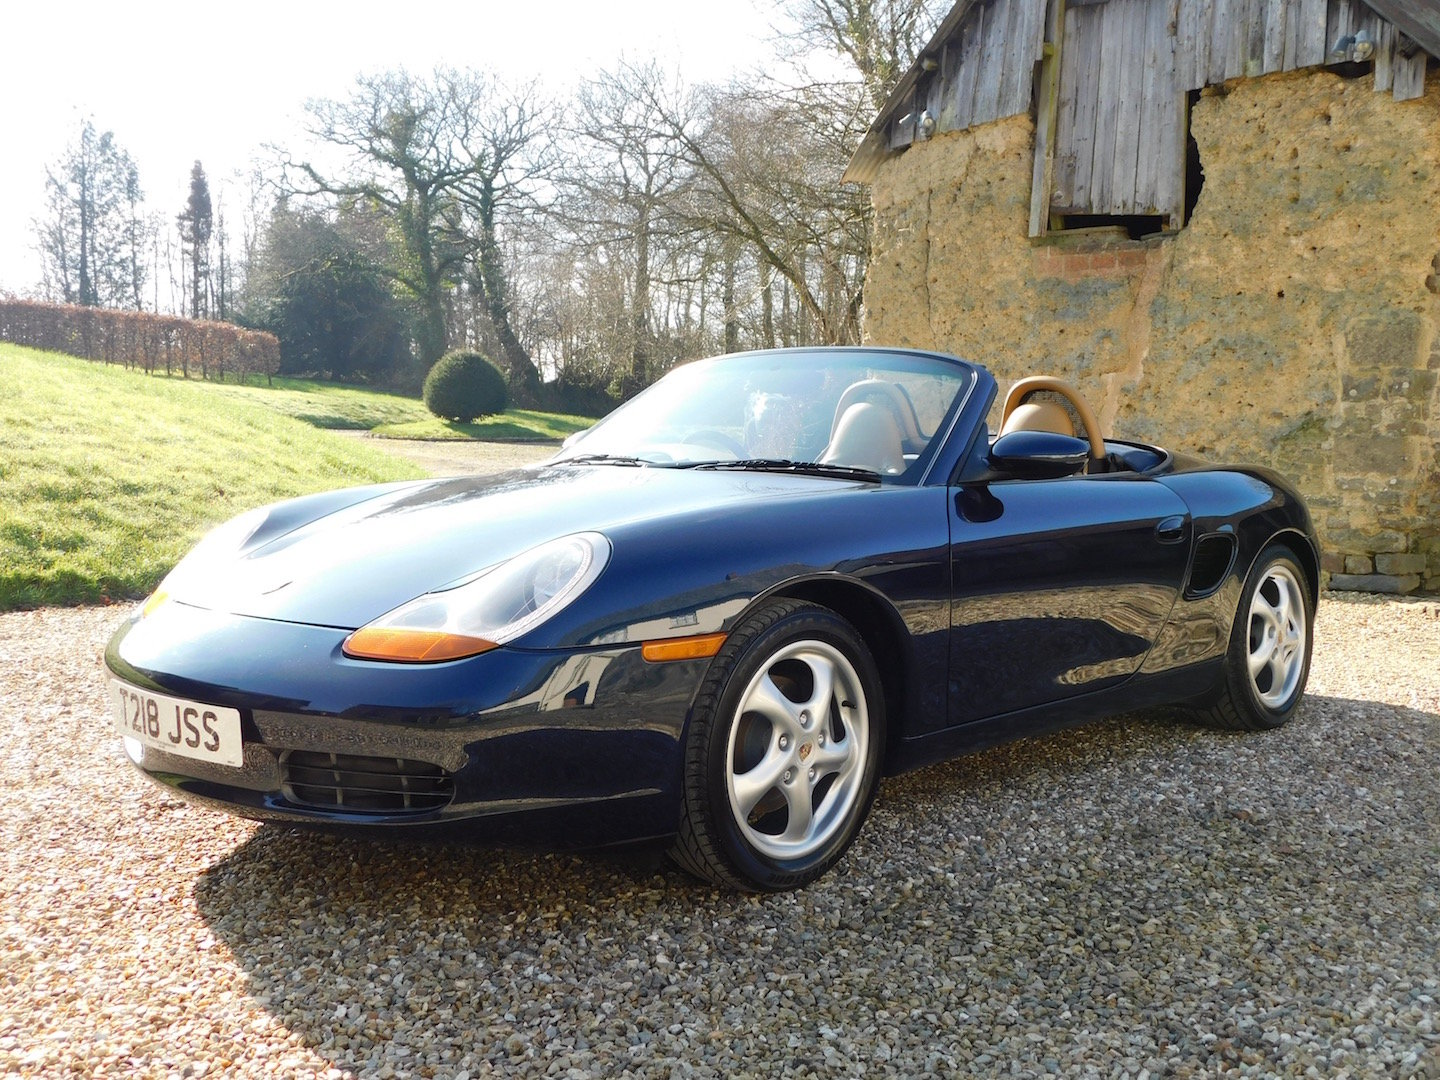 1999 Porsche Boxster 2.5 manual - 16k miles, 2 owners, incredible For Sale (picture 4 of 6)